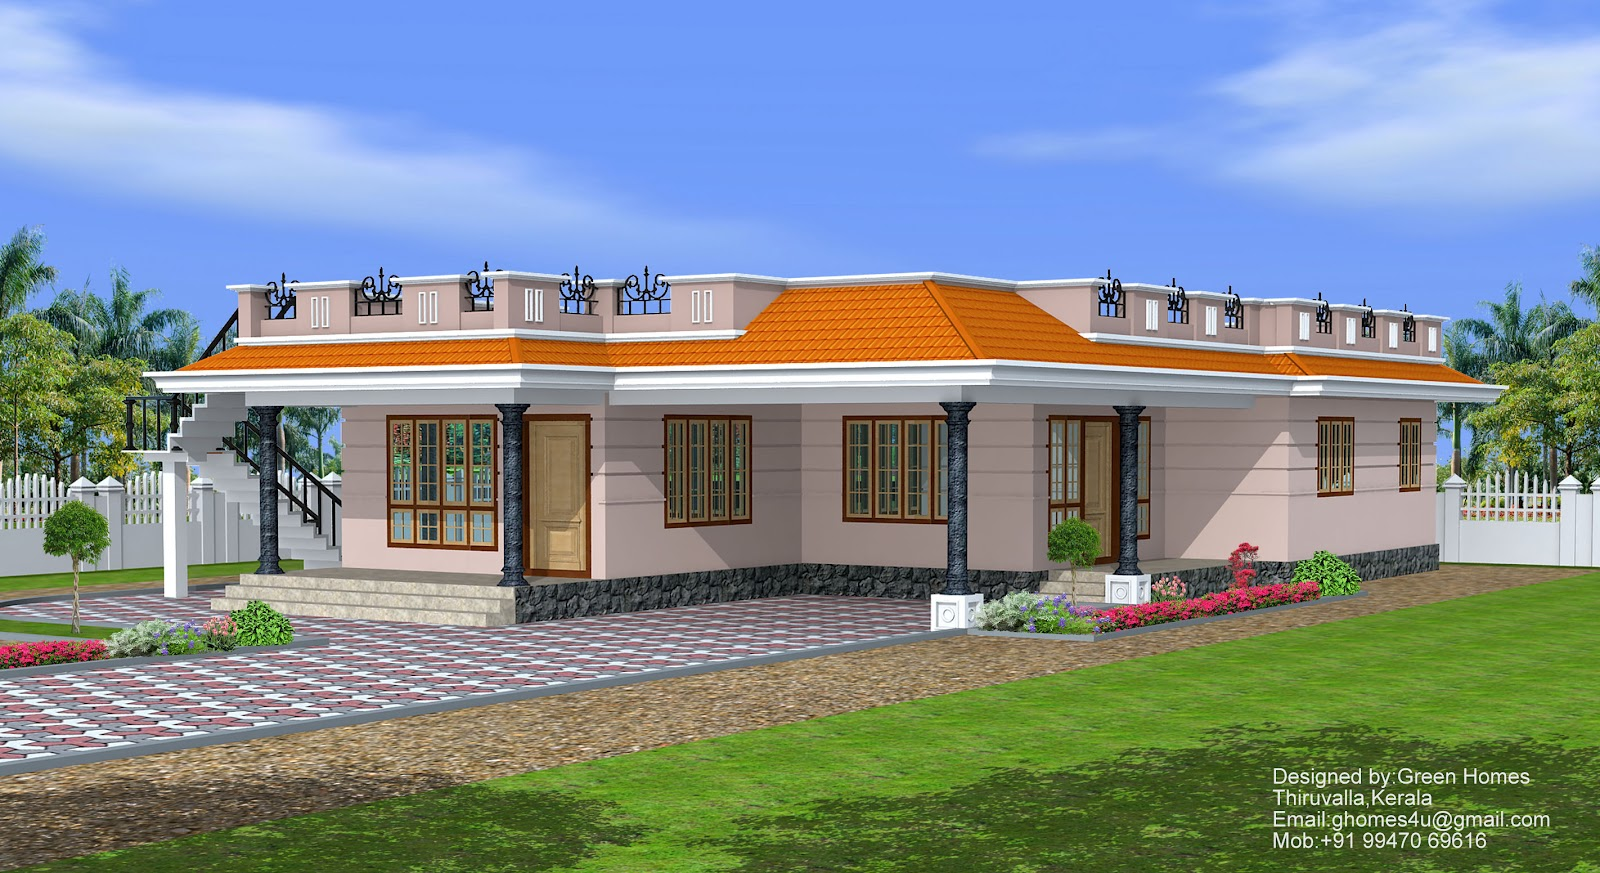 Single Story Exterior House Designs 1600 x 873